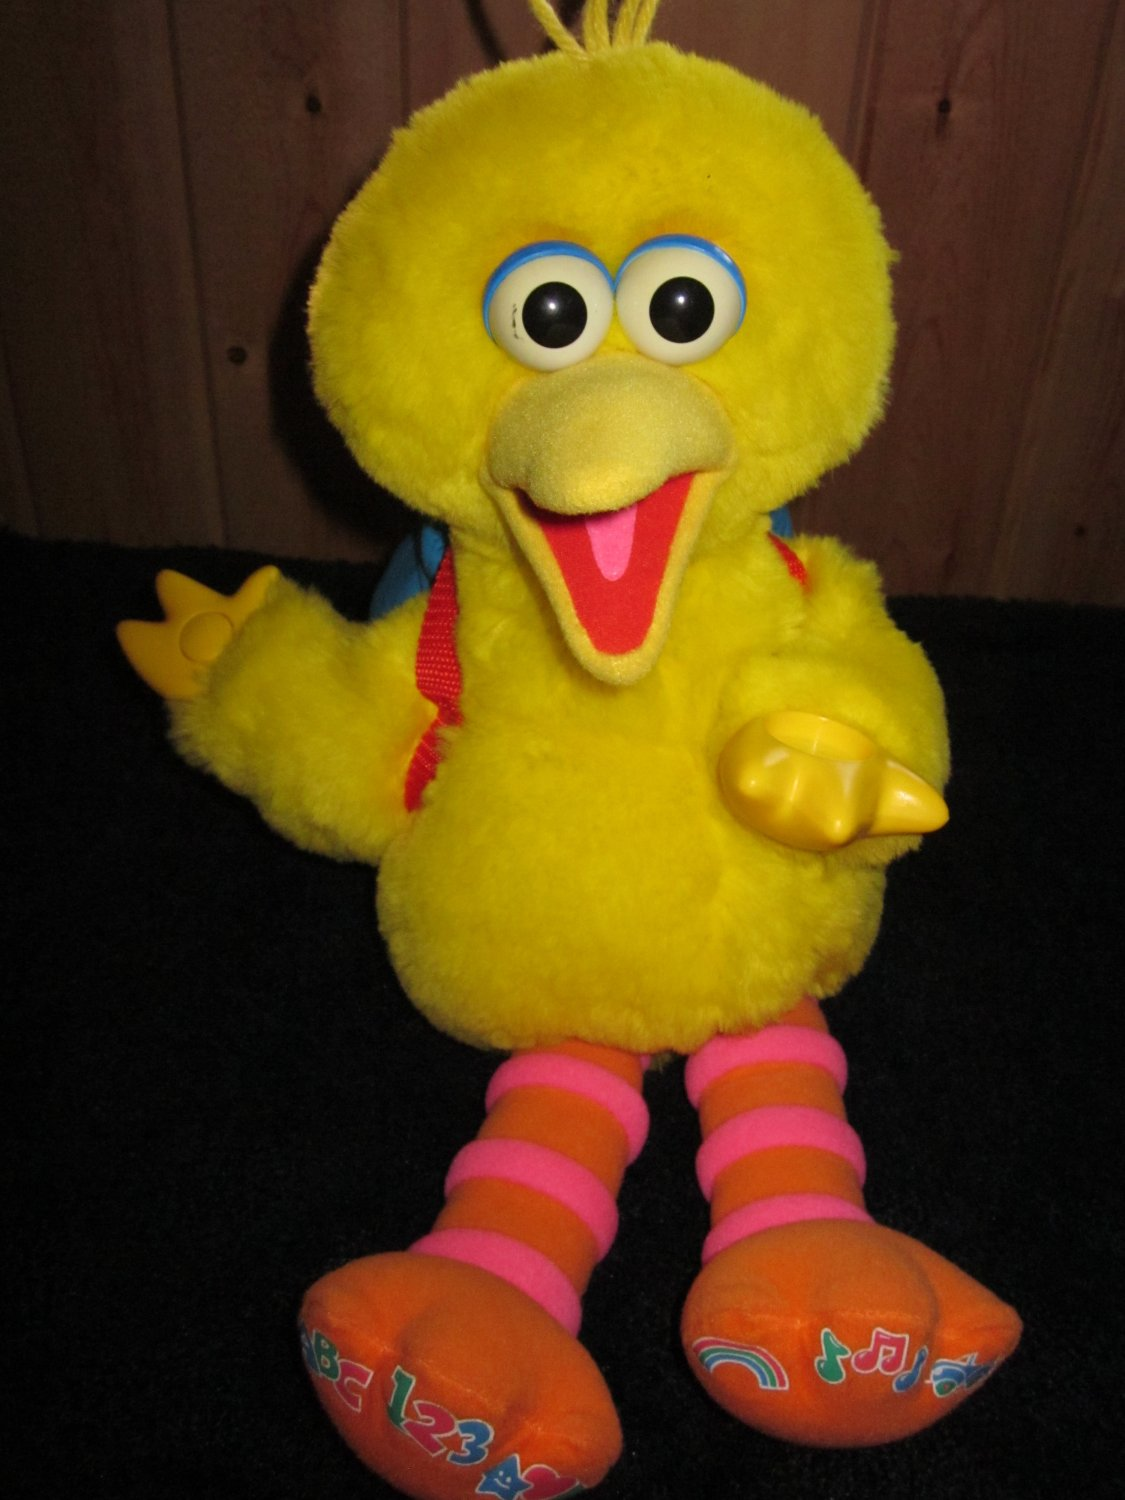 Fisher Price Play and Teach Big Bird Plush Toy ABC's Shapes Songs and more